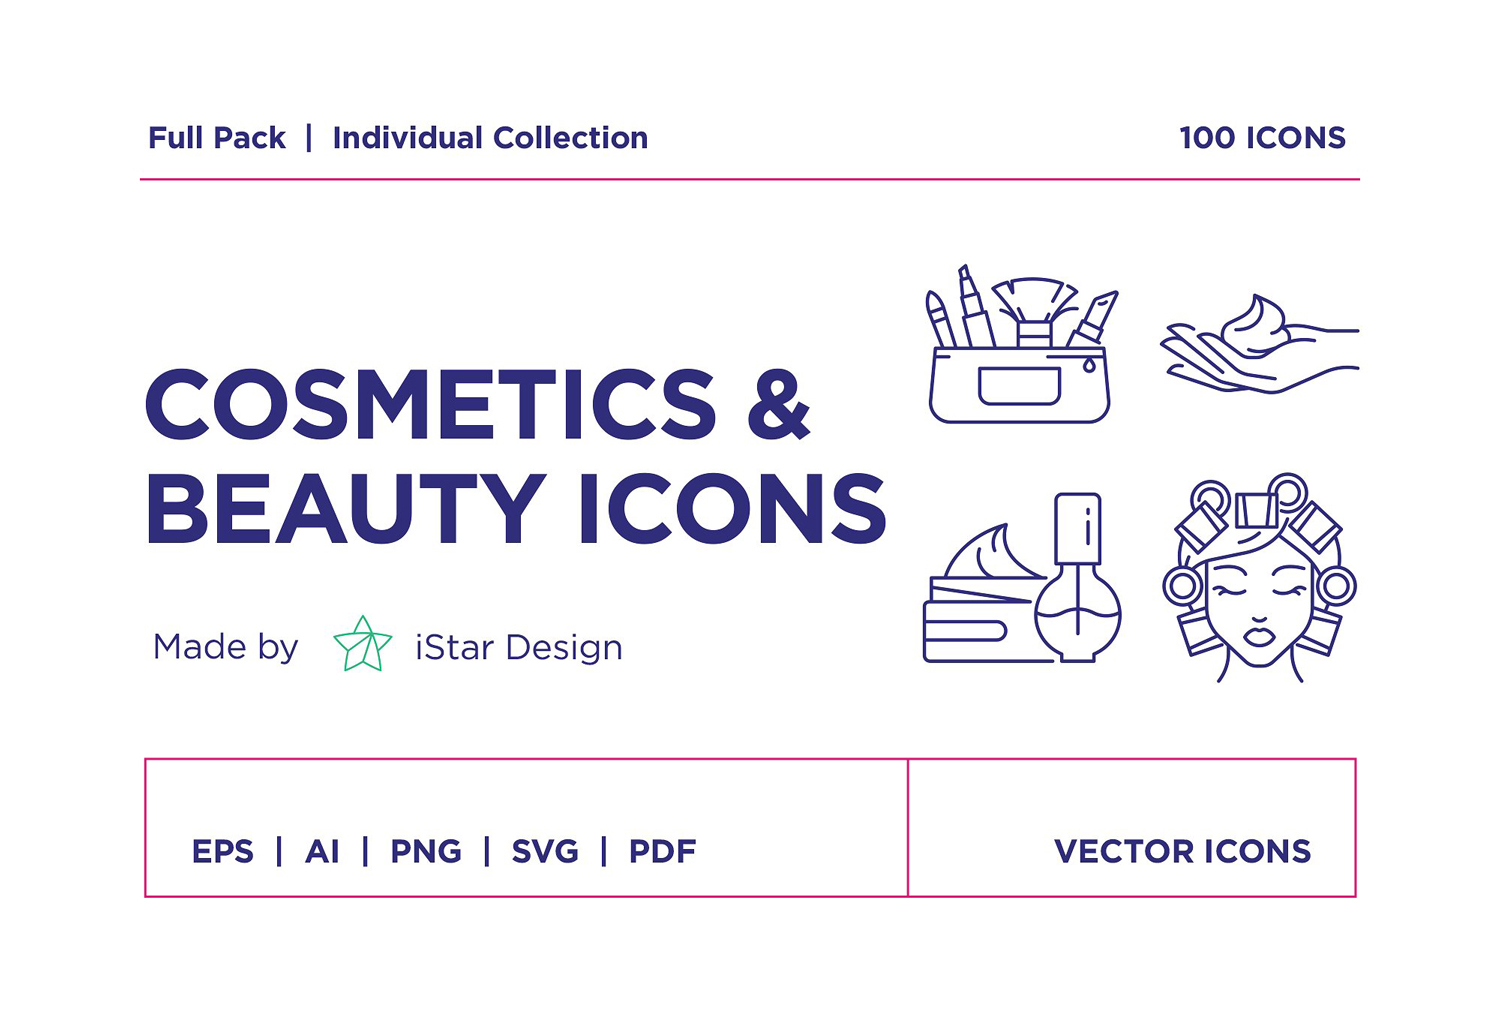 Cosmetics icon package